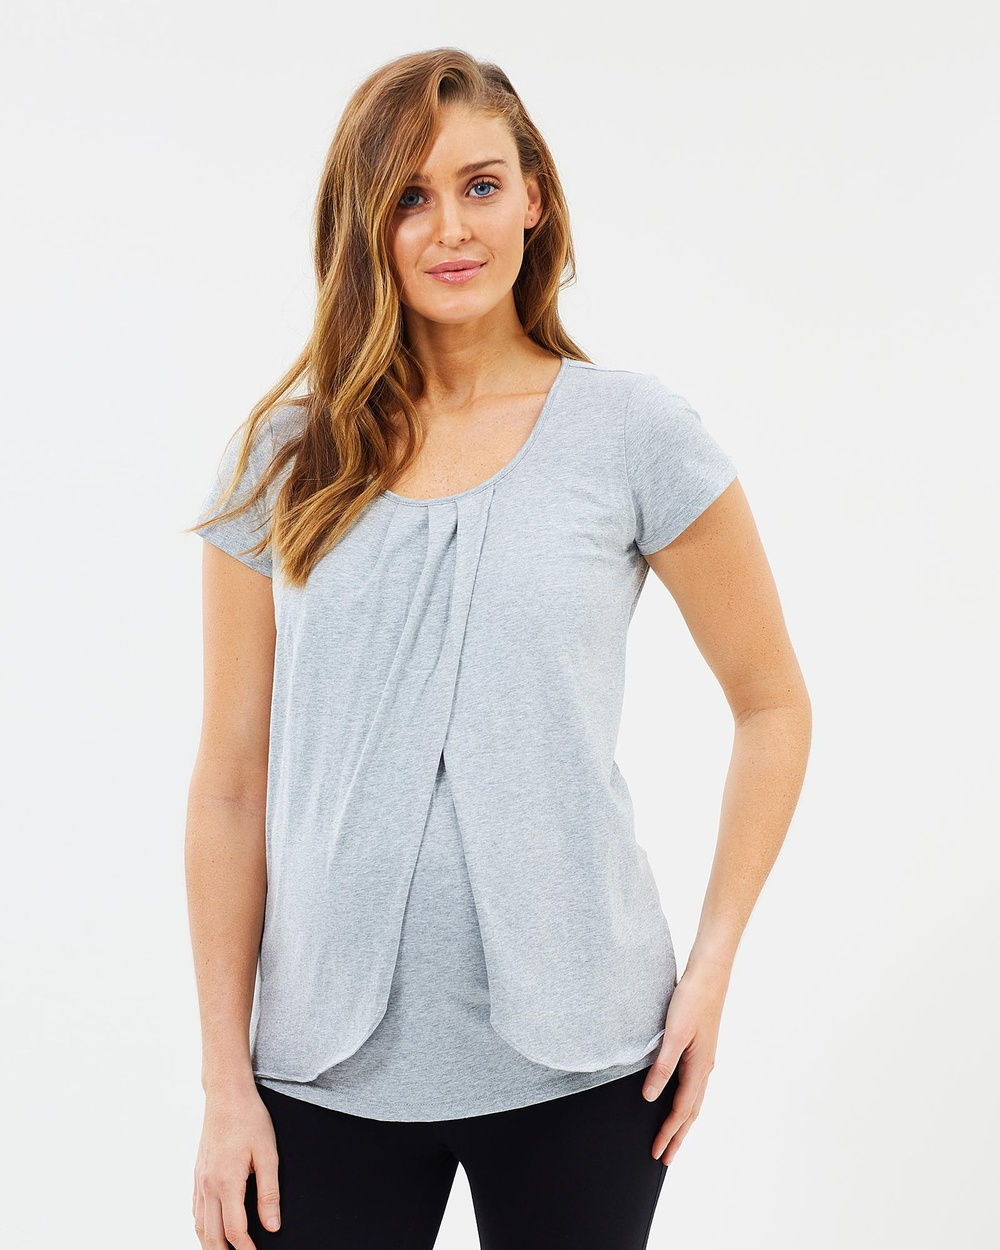 Photo of Angel Maternity Angel Maternity Maternity Petal Front Short Sleeve Nursing Top Tops Grey Maternity Petal Front Short Sleeve Nursing Top - For comfortable, versatile fashion that doesn & #39t compromise style during your pregnancy, look no further than Angel Maternity. Thoughtfully designed for during- and after-pregnancy, the Maternity Petal Front Short Sleeve Nursing Top is crafted from soft jersey with generous stretch. It features a petal wrap front atop a nursing panel to allow easy ac